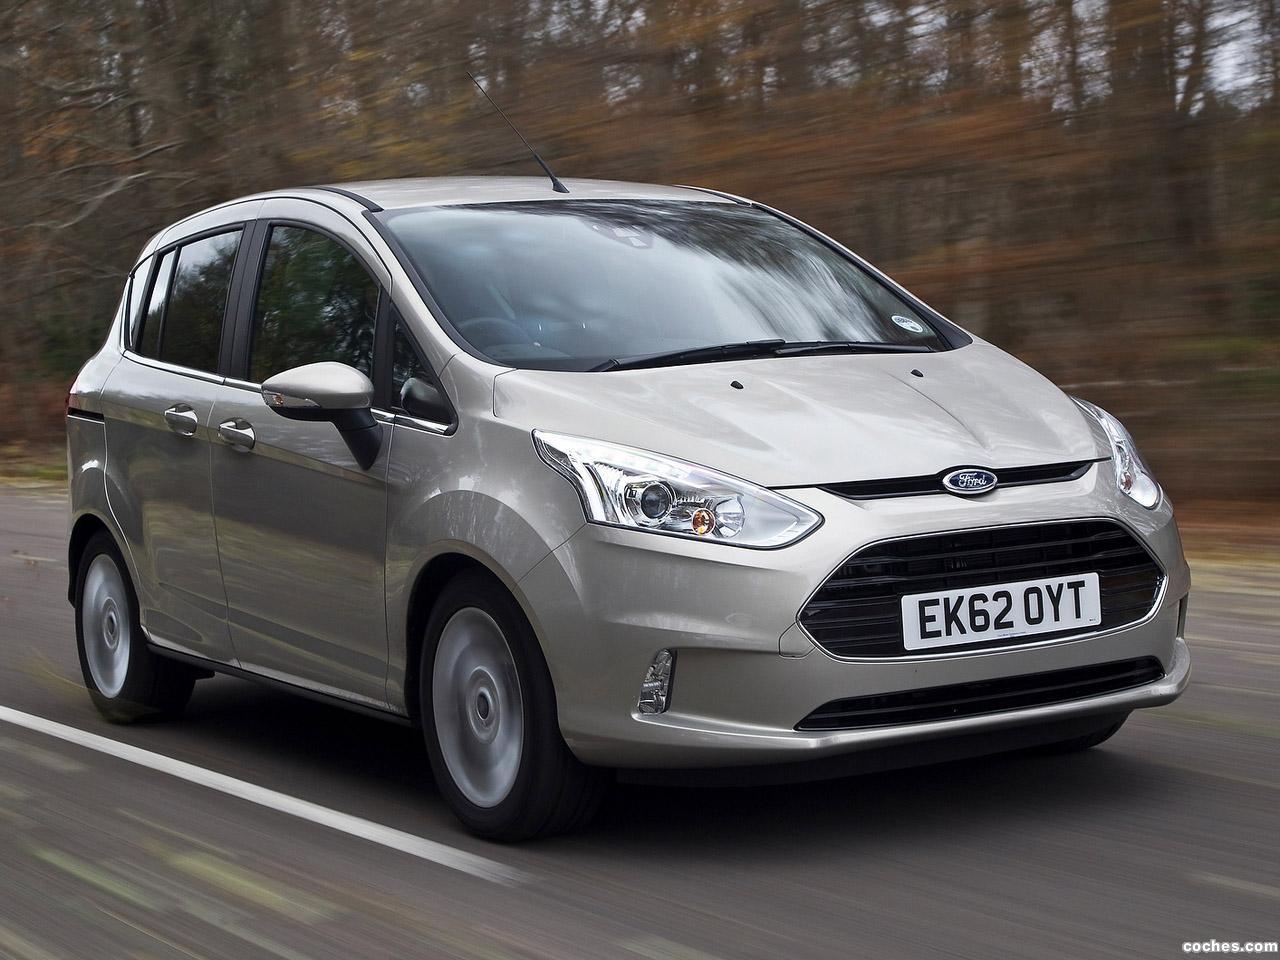 ford_b-max-uk-2013_r15